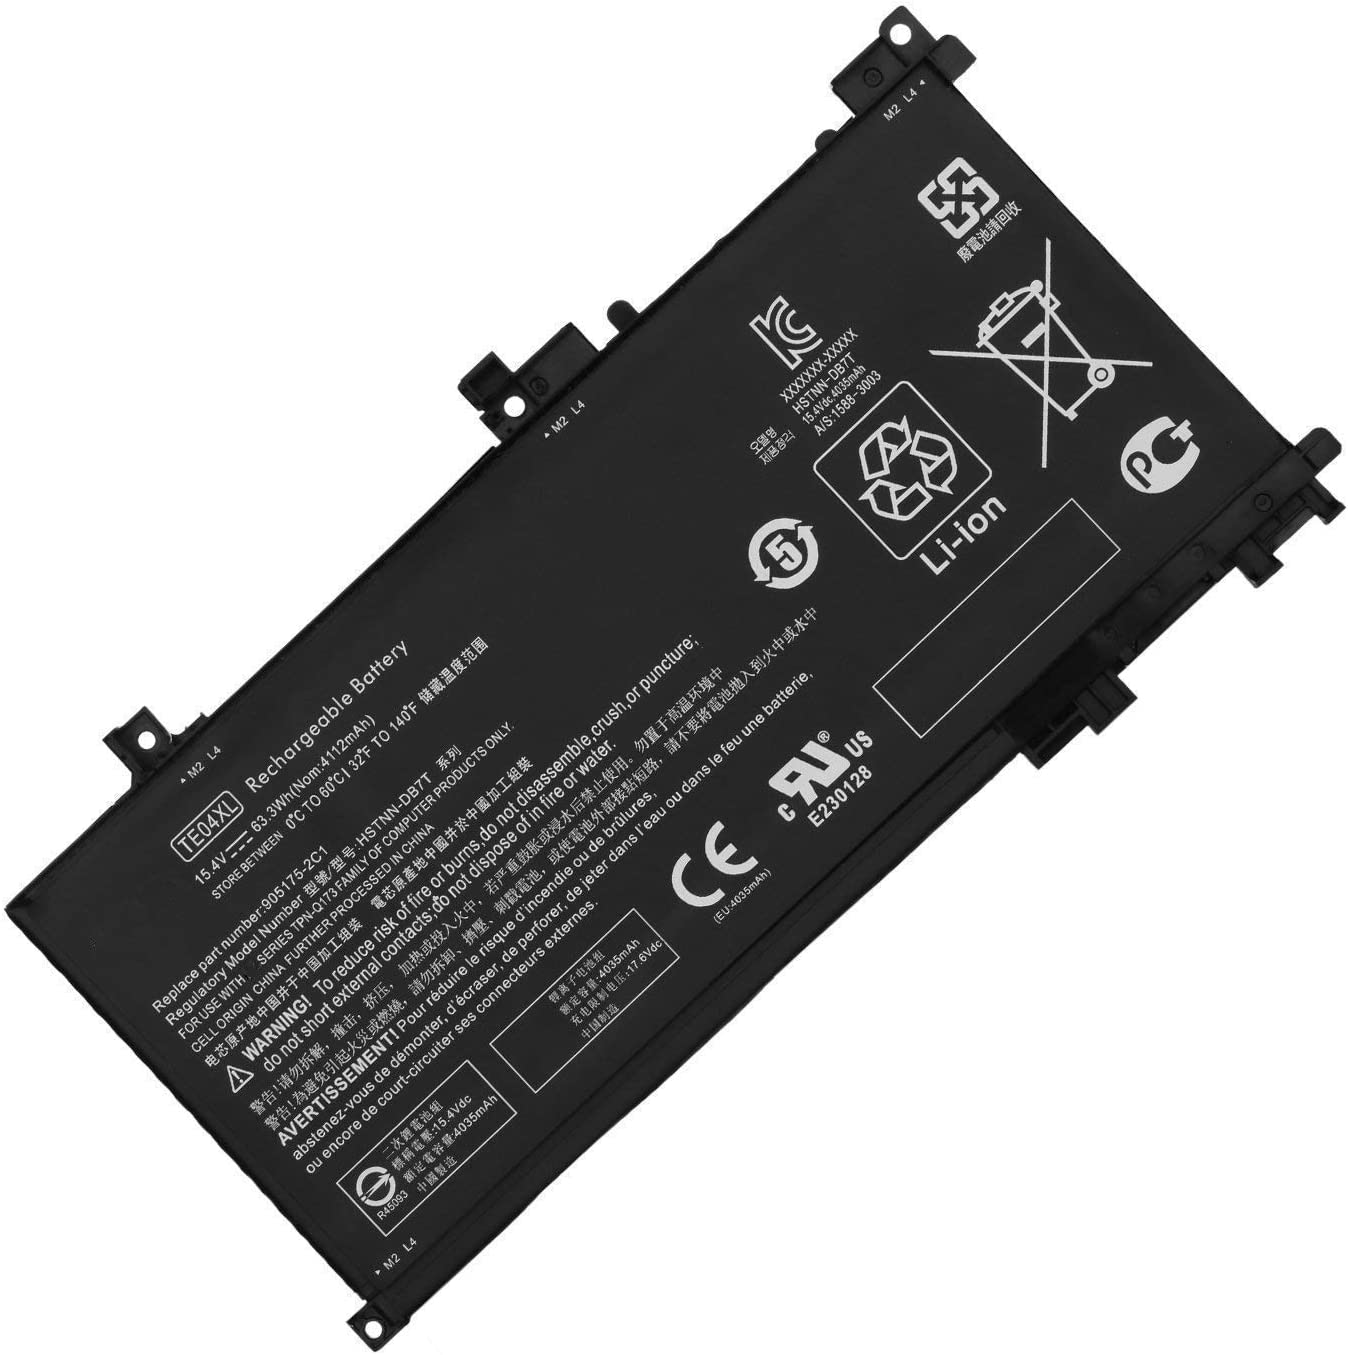 TE04XL Laptop Battery Limited price sale Replacement Over item handling ☆ for 15-AX250 15-AX200 Owmen HP